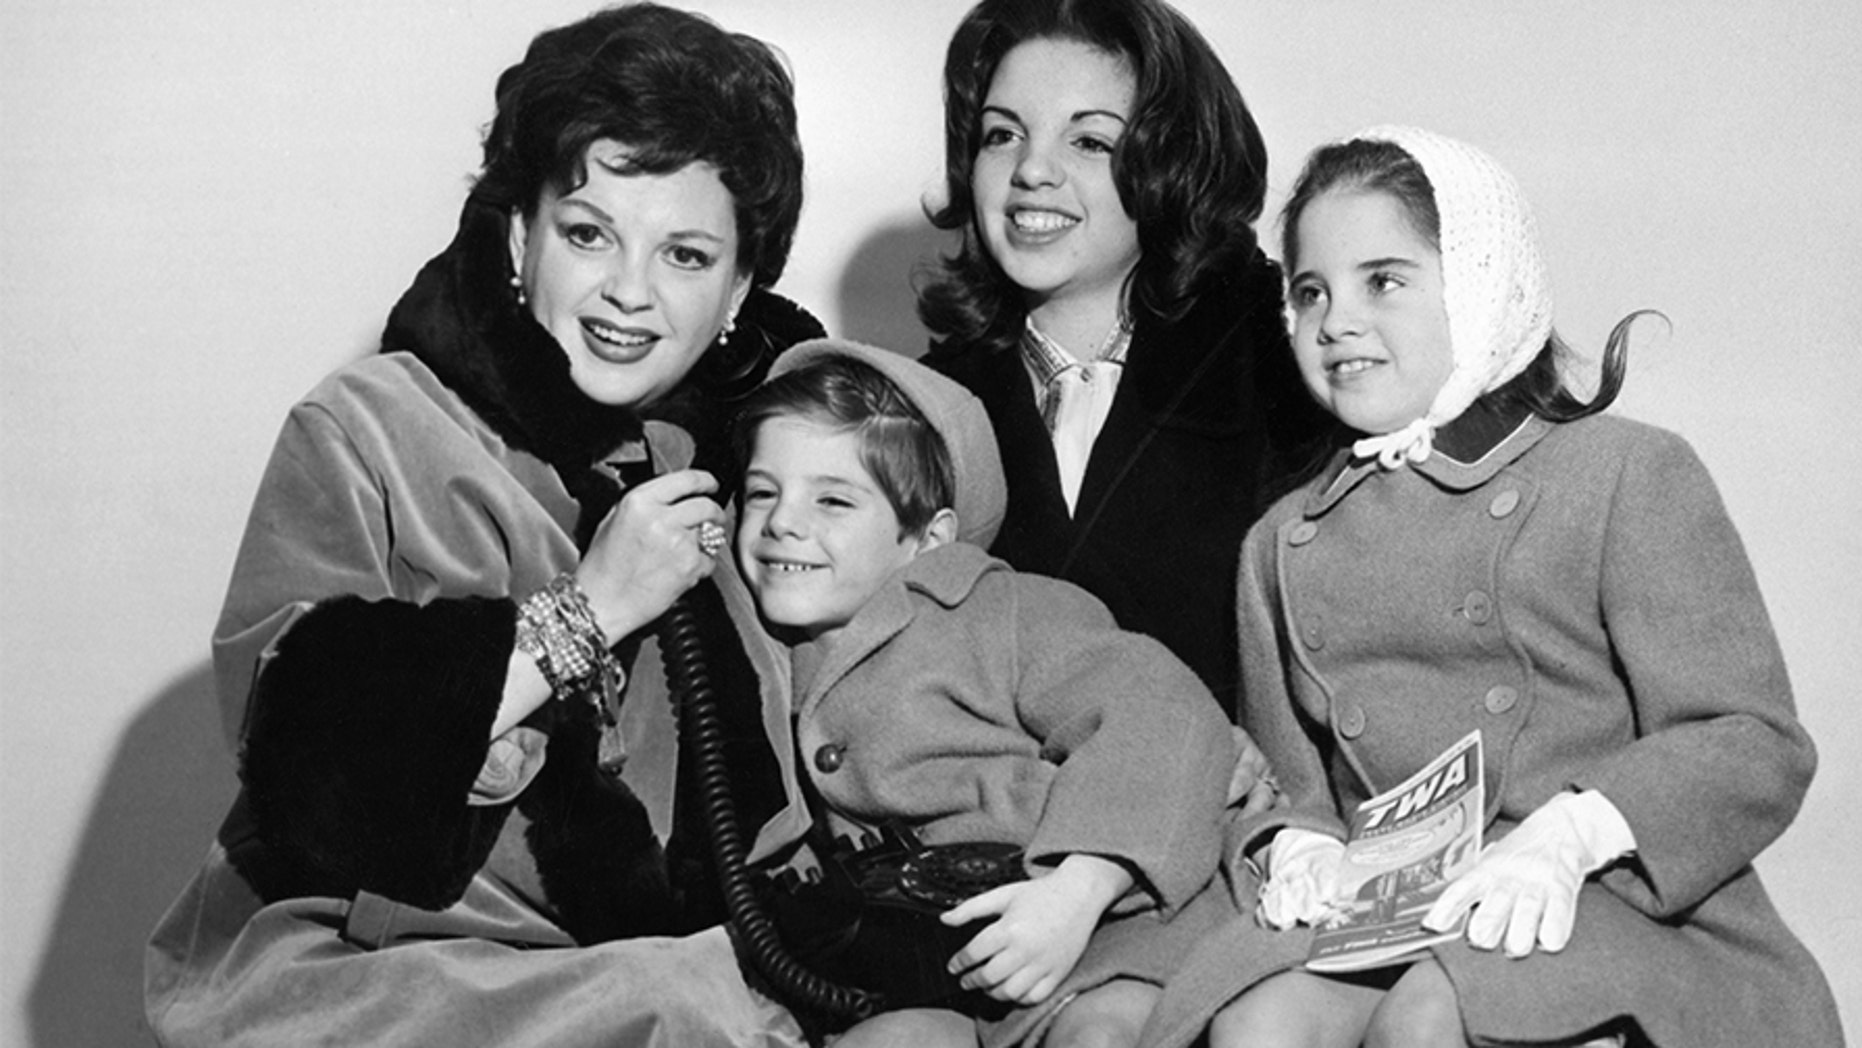 Judy Garland's daughter Lorna Luft recalls growing up with